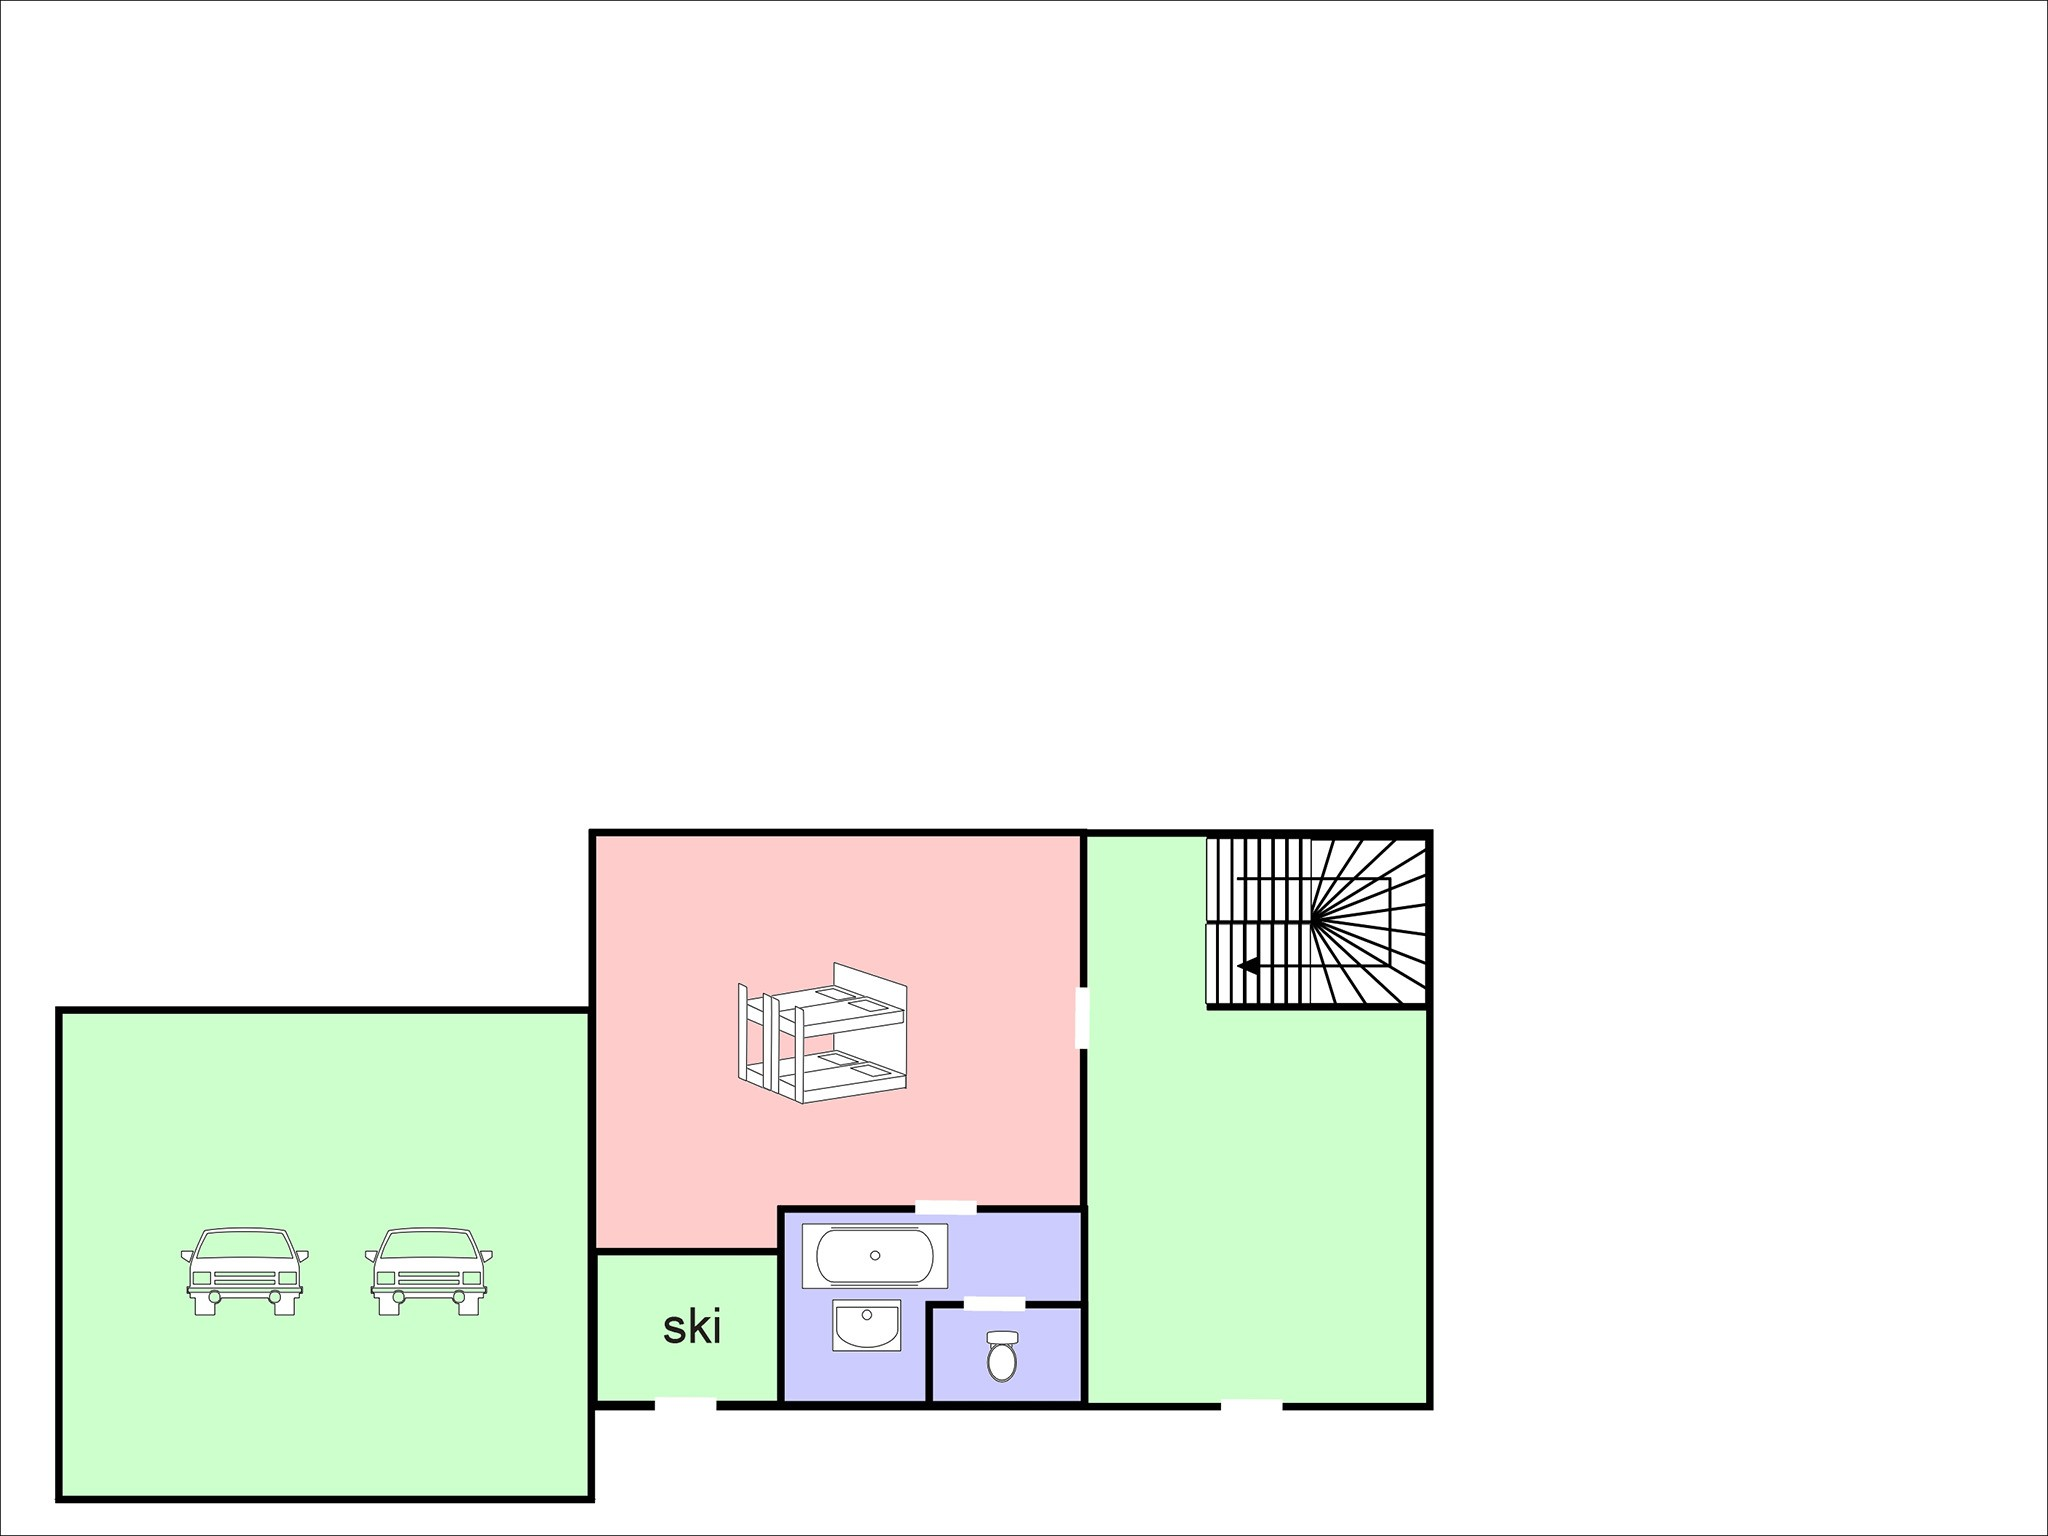 Chalet Flocon de Neige - floor plan - level 3